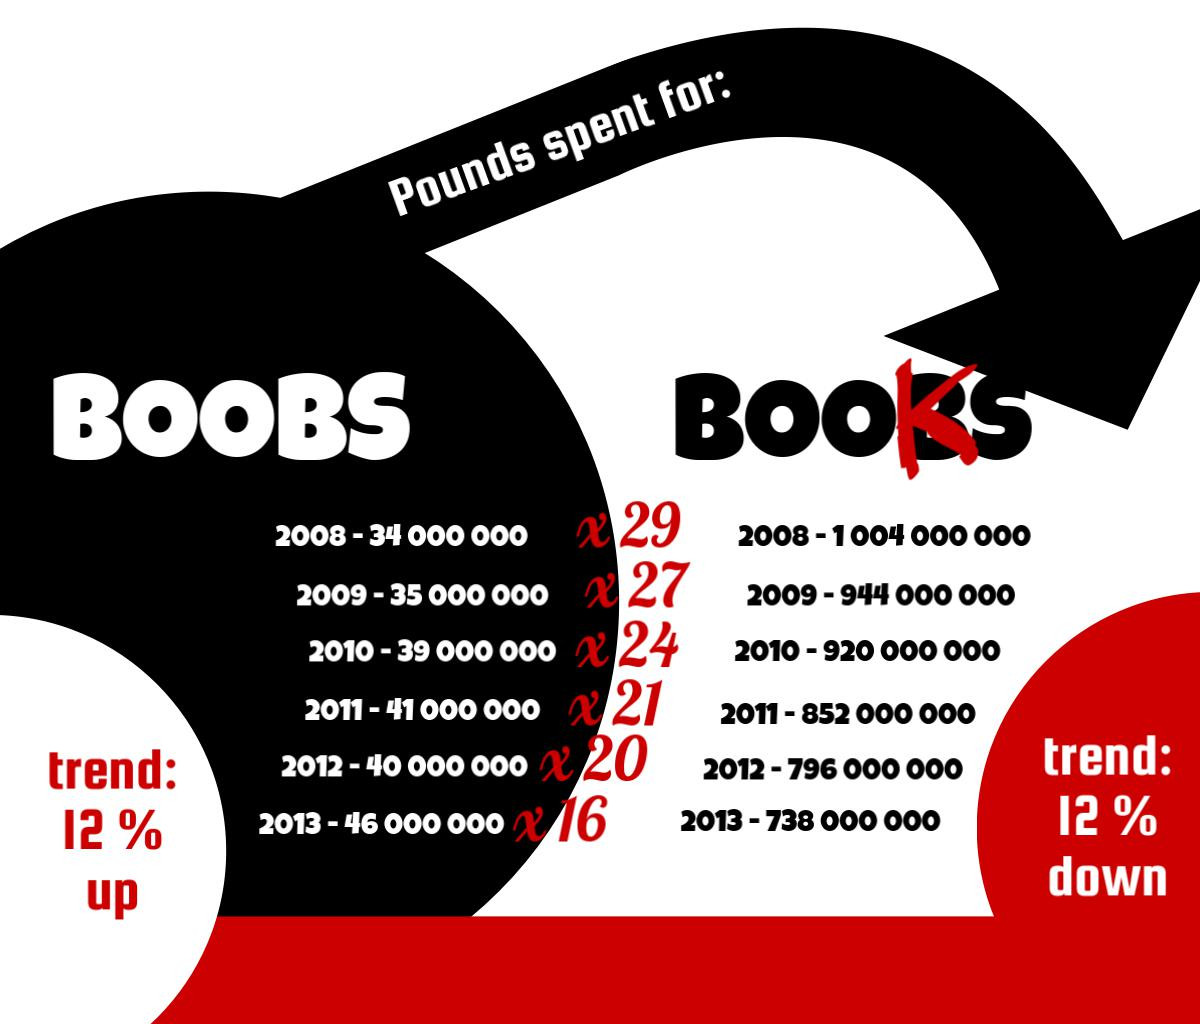 Boobs price vs books price